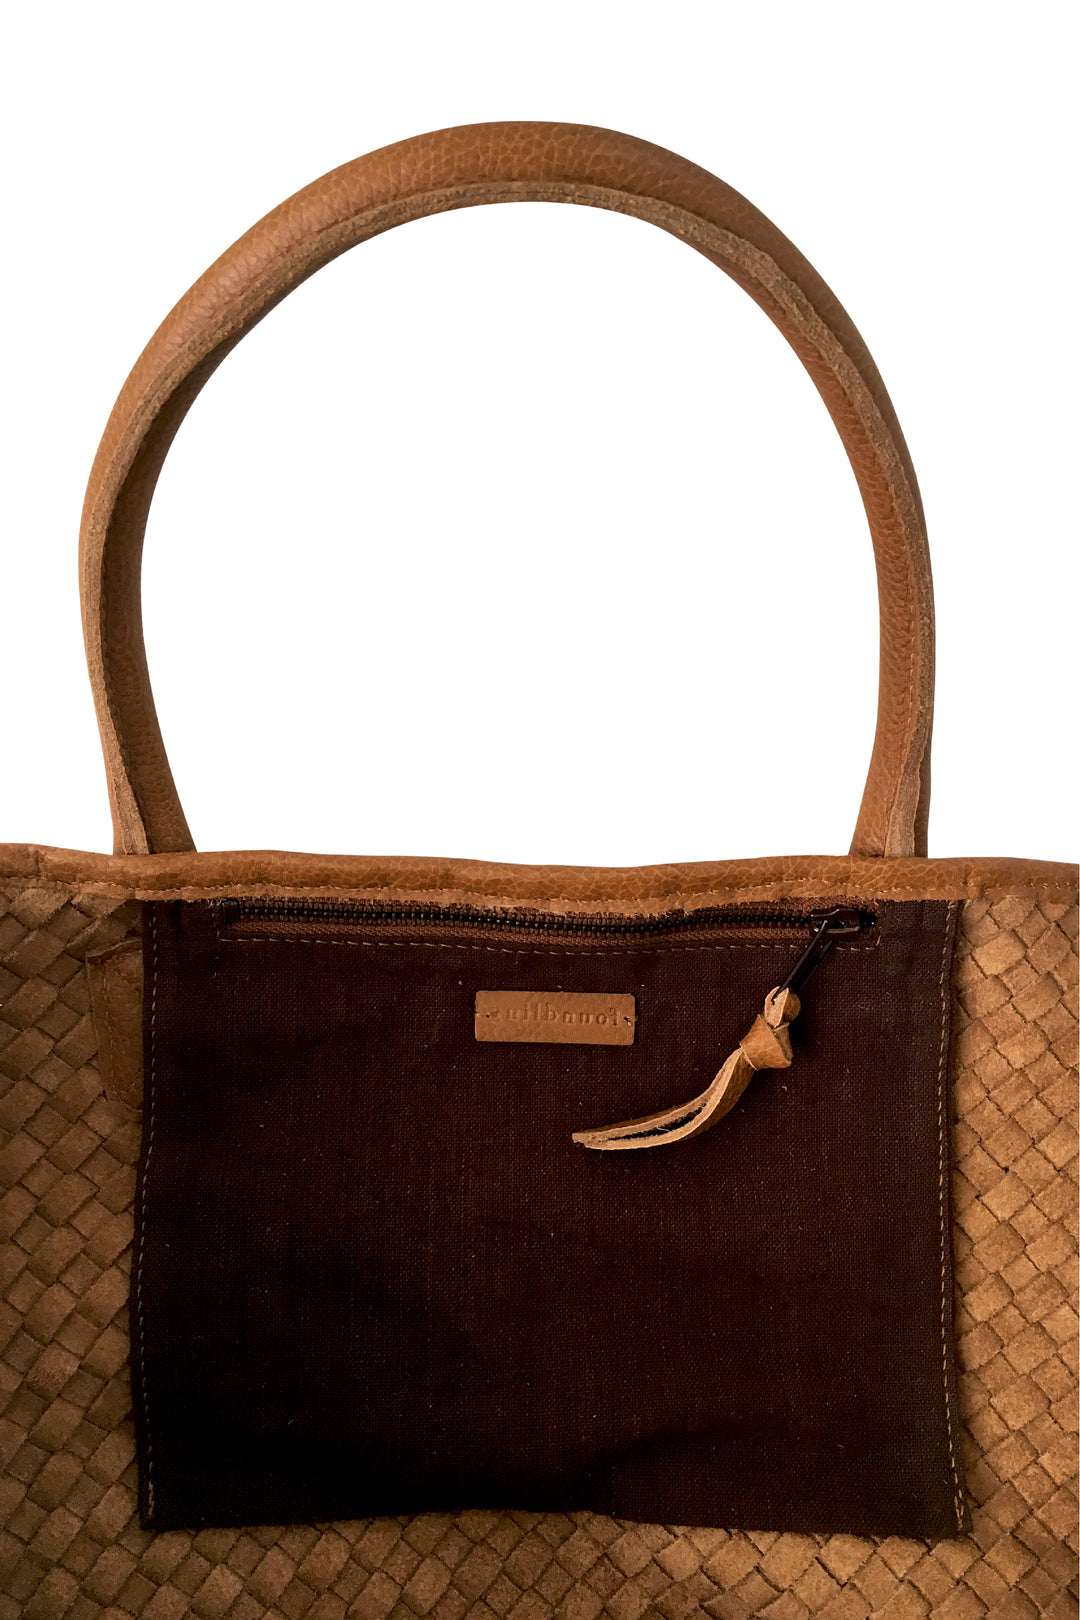 woven leather tote basket bag tan caramel inside pocket